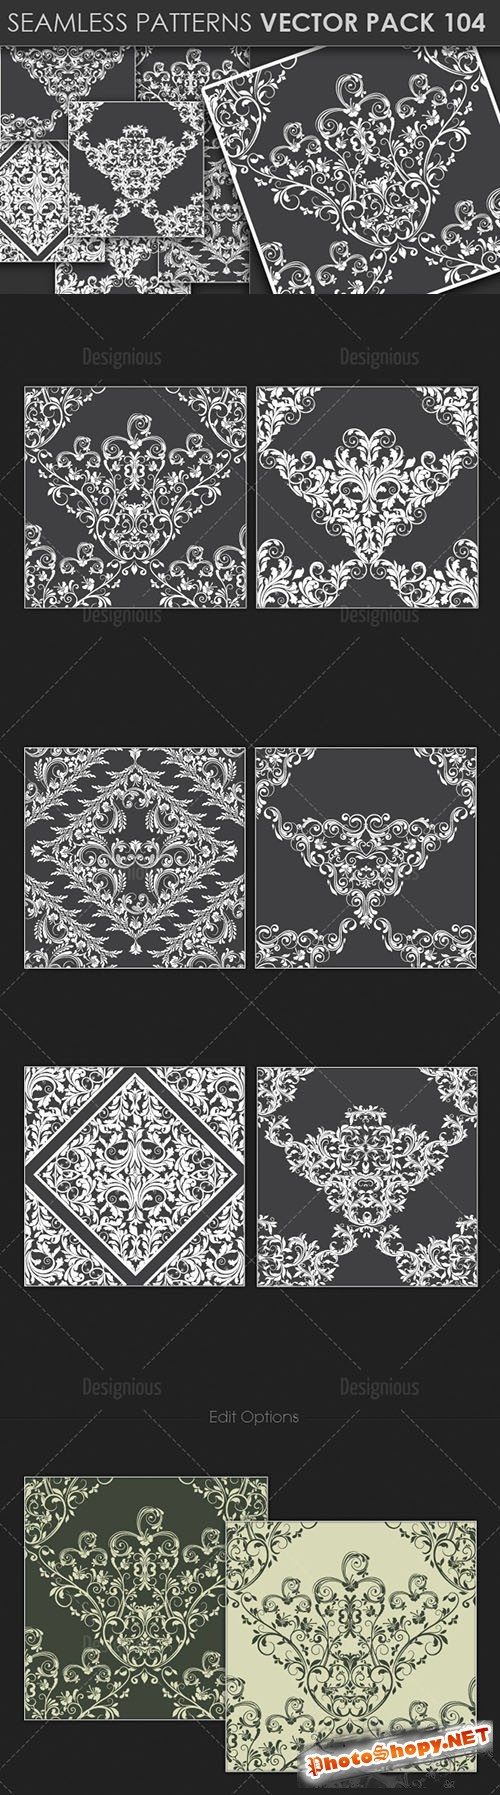 Seamless Patterns Vector Pack 104